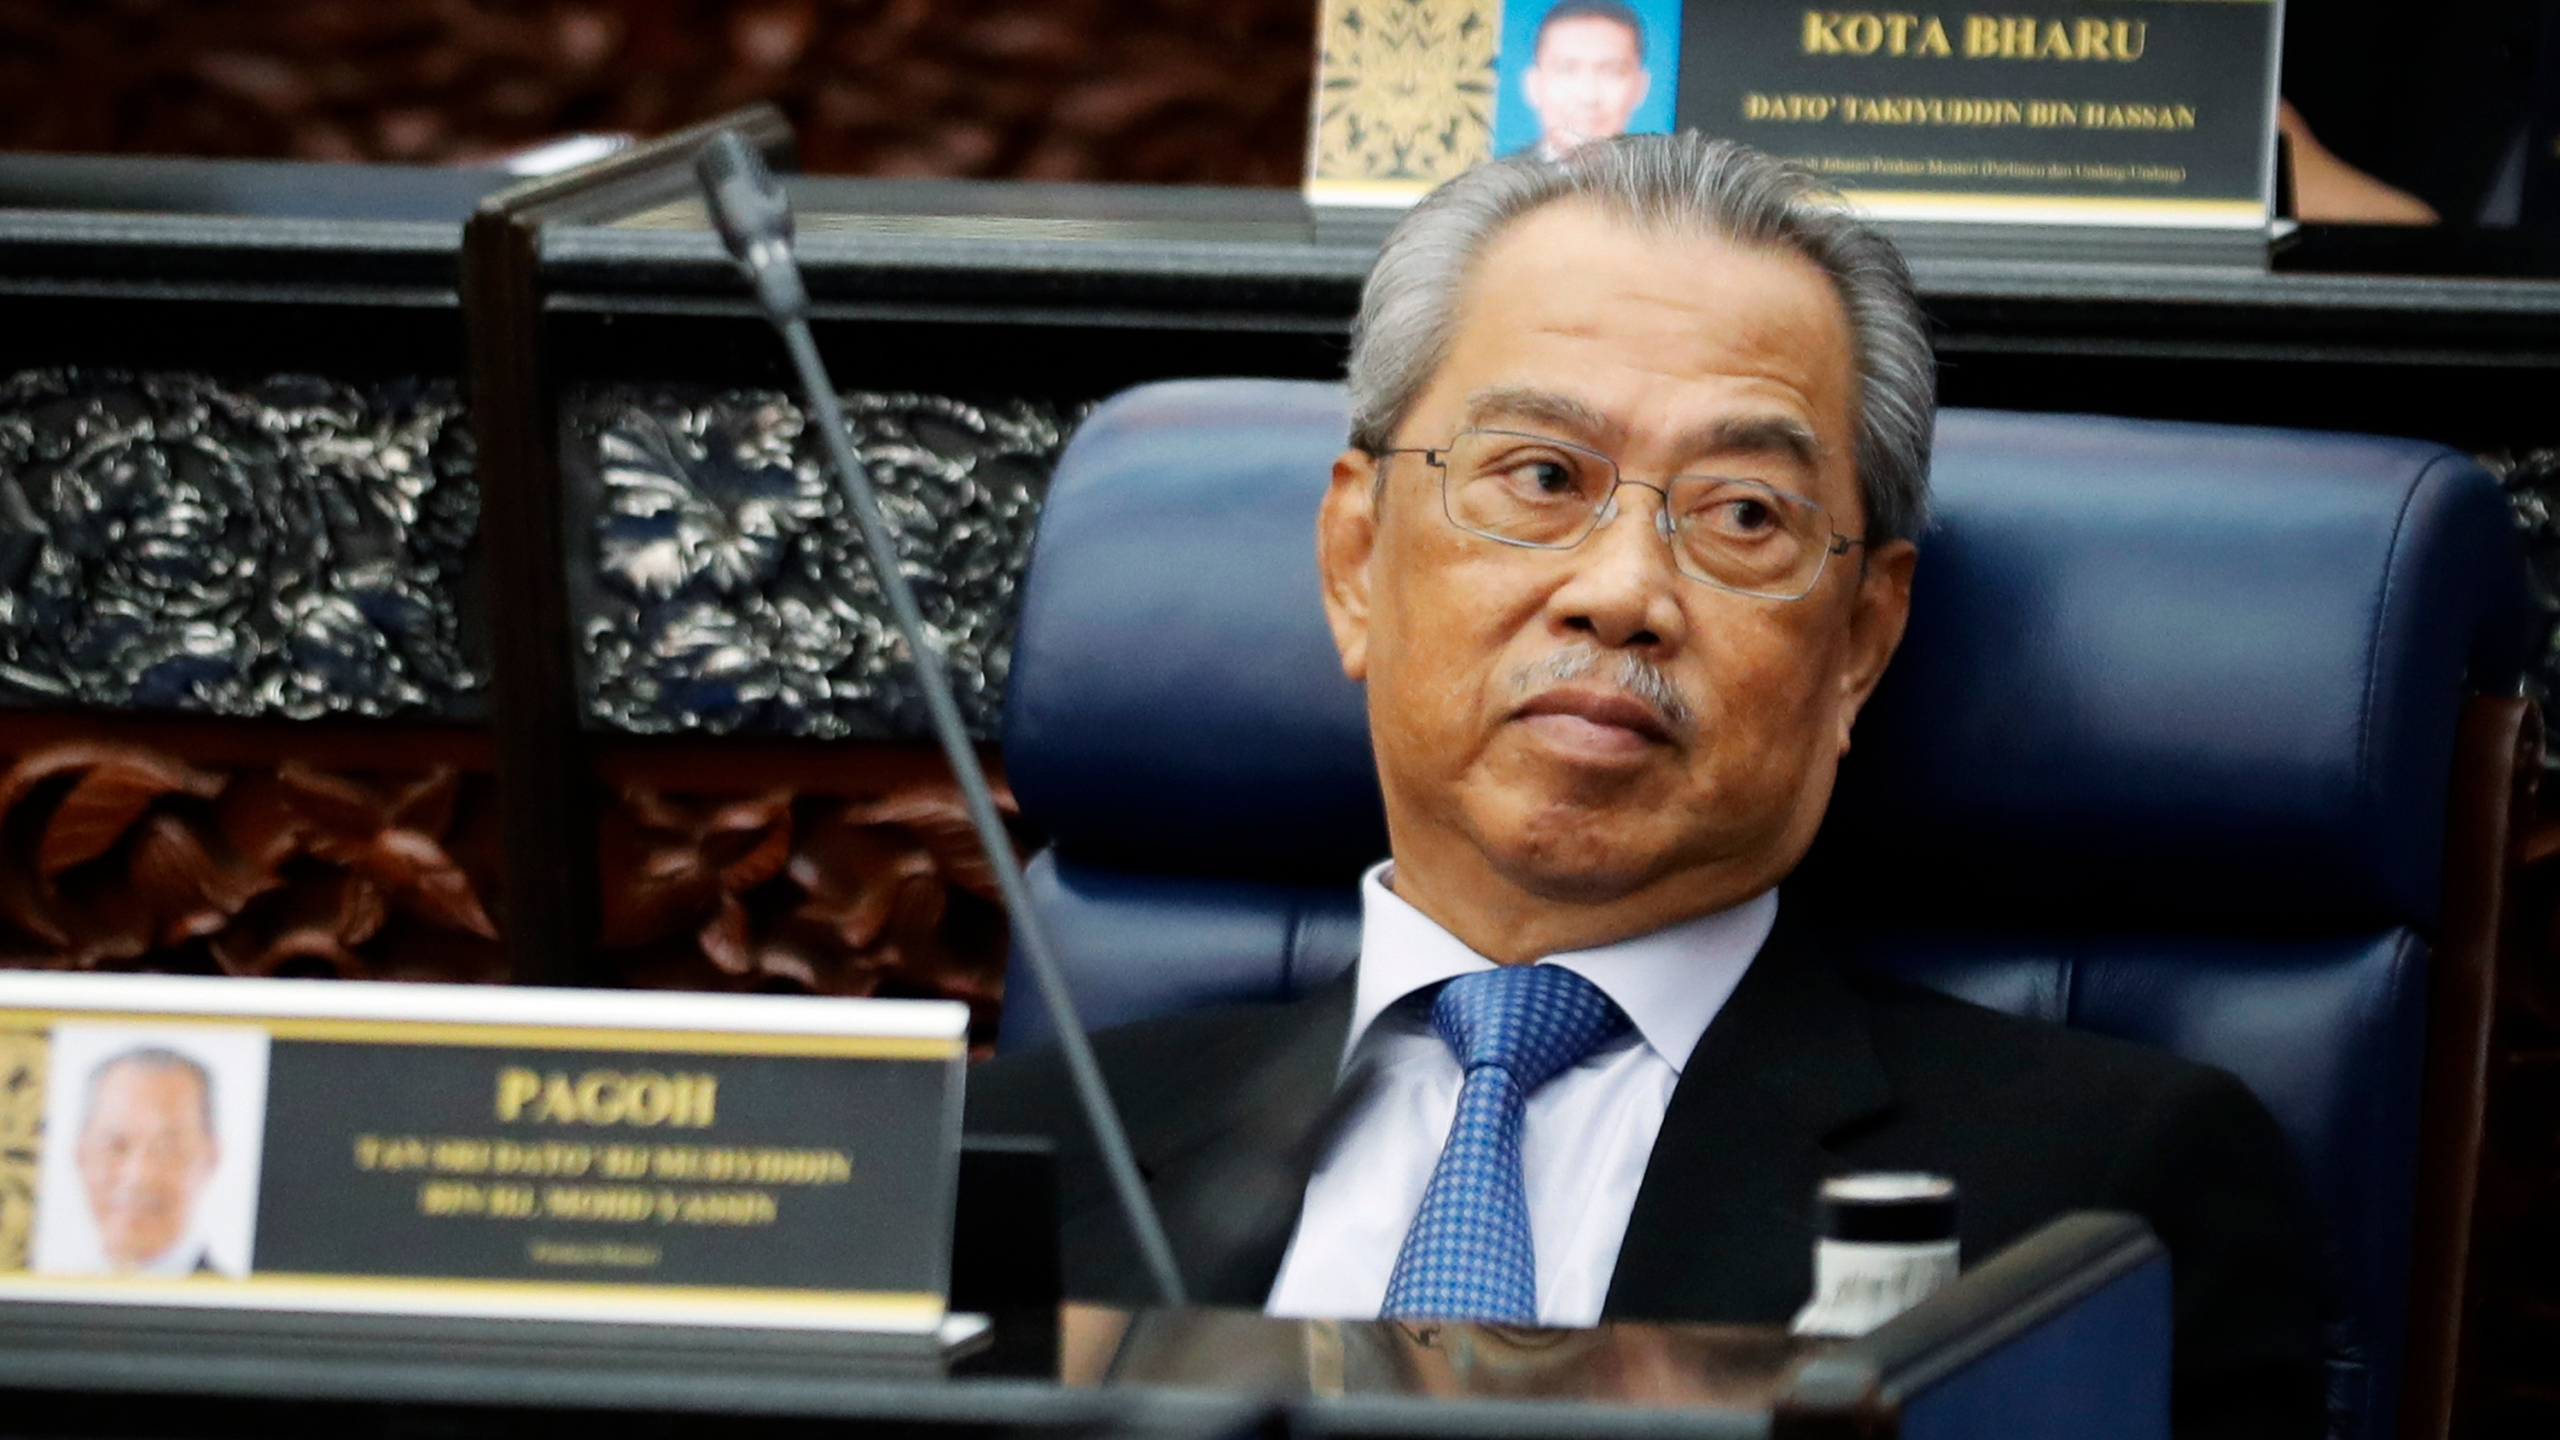 In this July 13, 2020, photo, Malaysian Prime Minister Muhyiddin Yassin attends a Parliament session at lower house in Kuala Lumpur, Malaysia. (AP Photo/Vincent Thian)